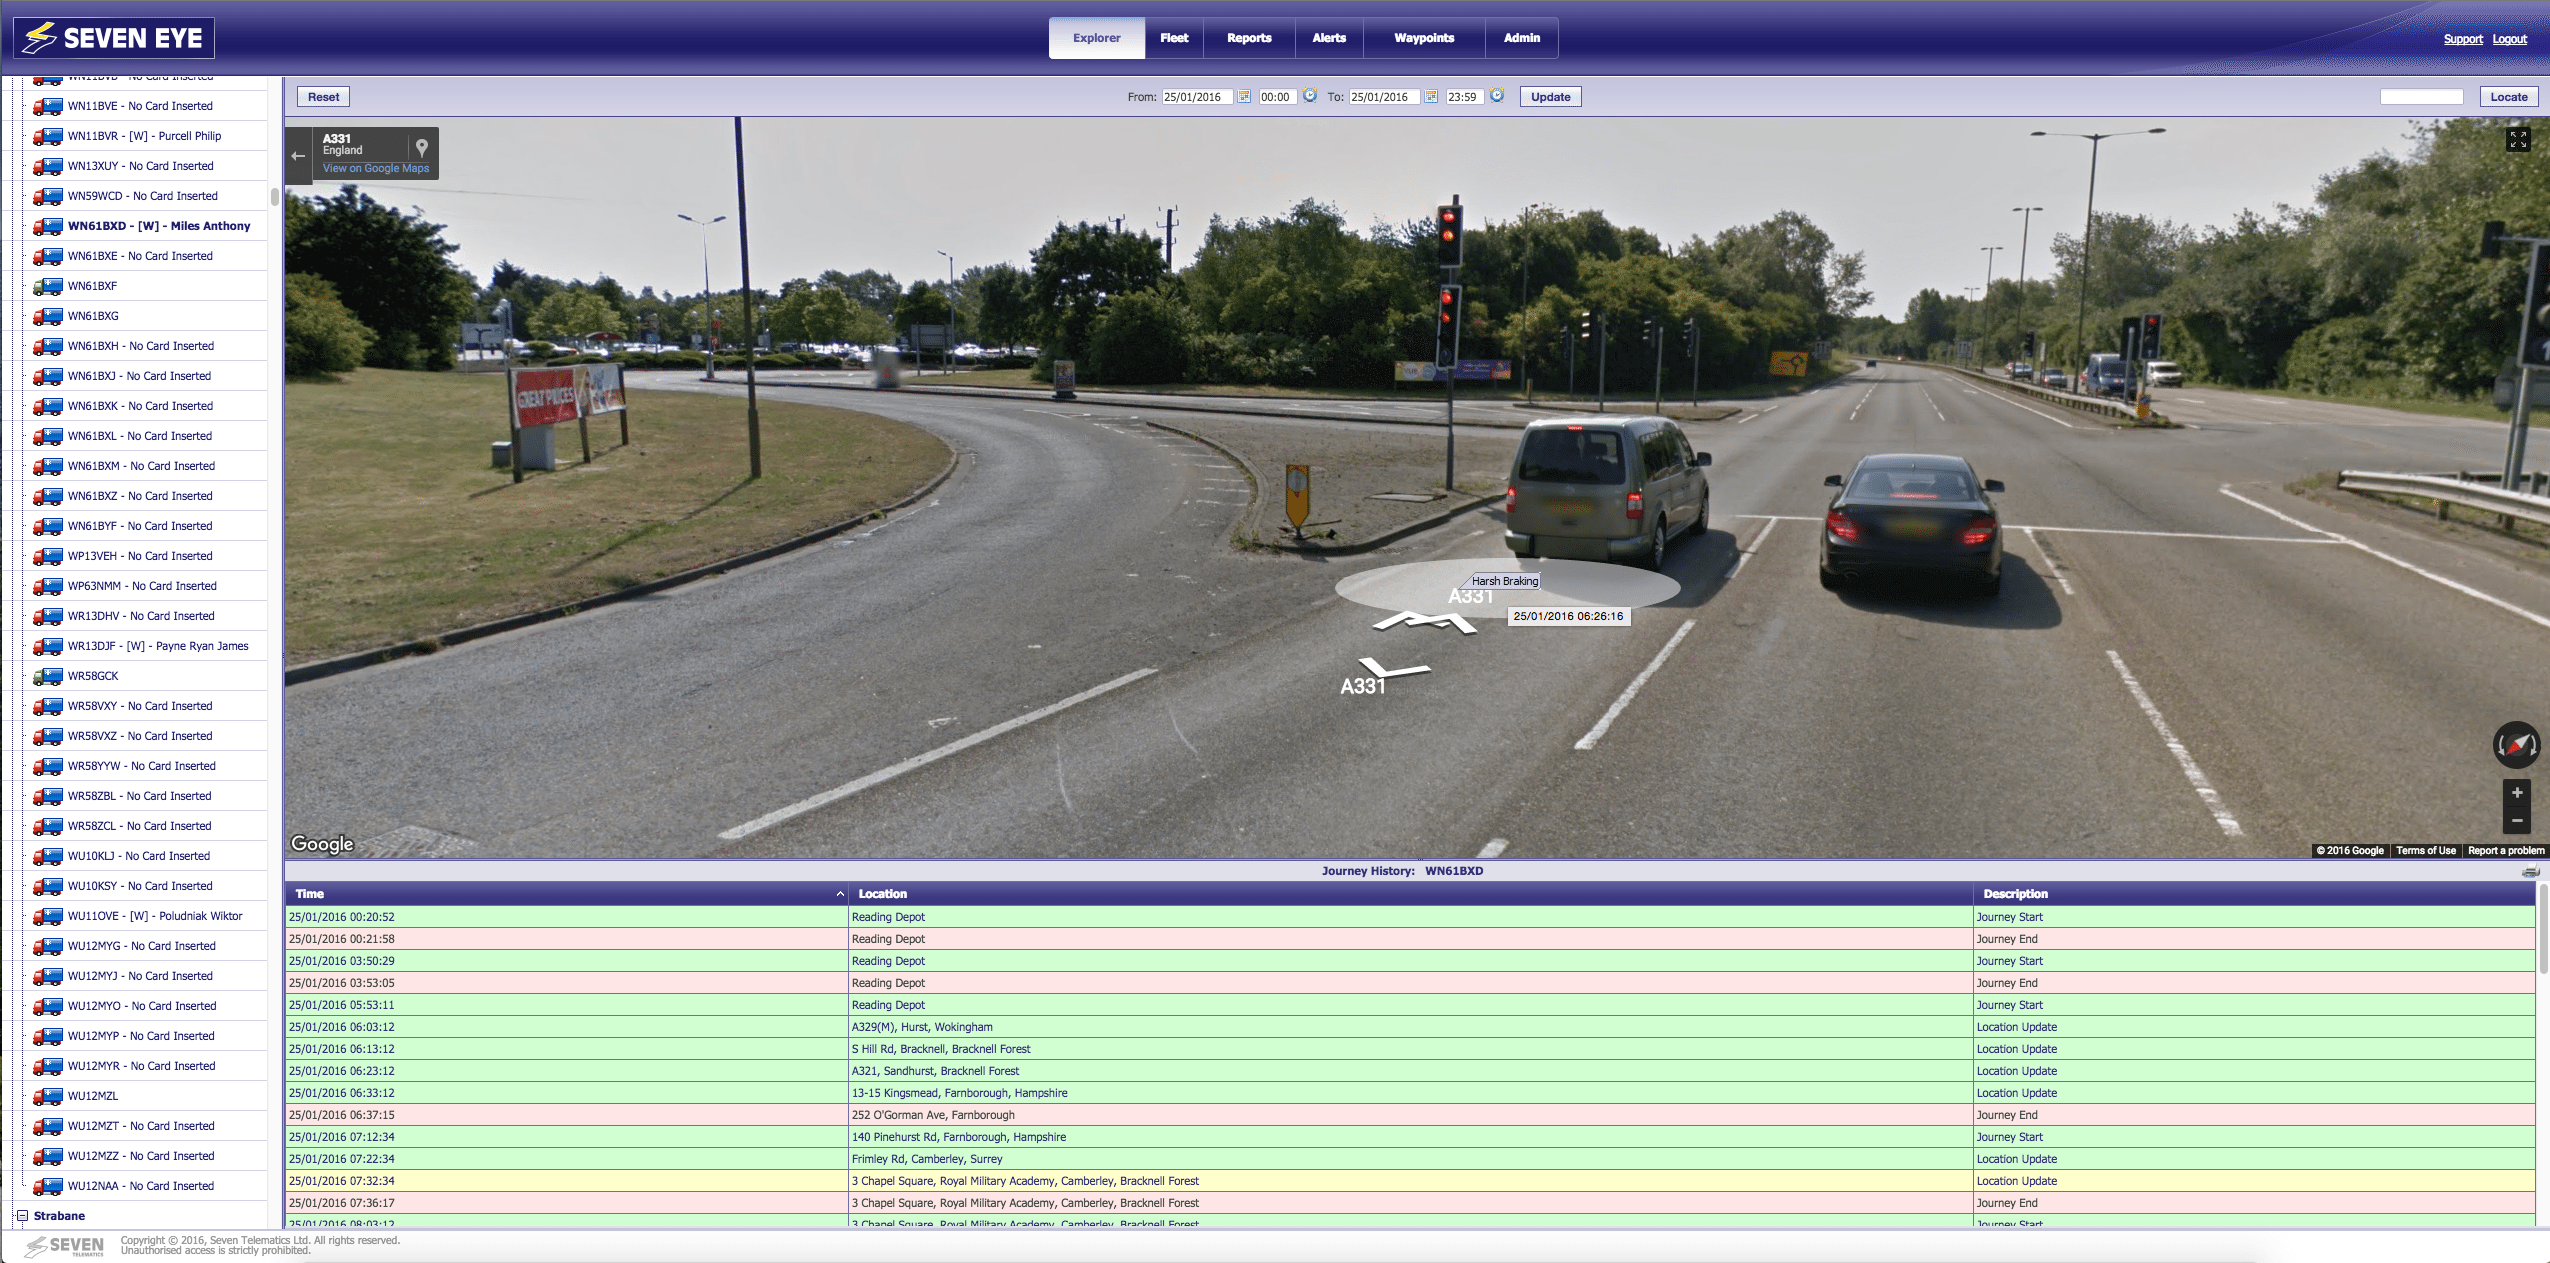 ehicle Tracking overlaid on Google Street View